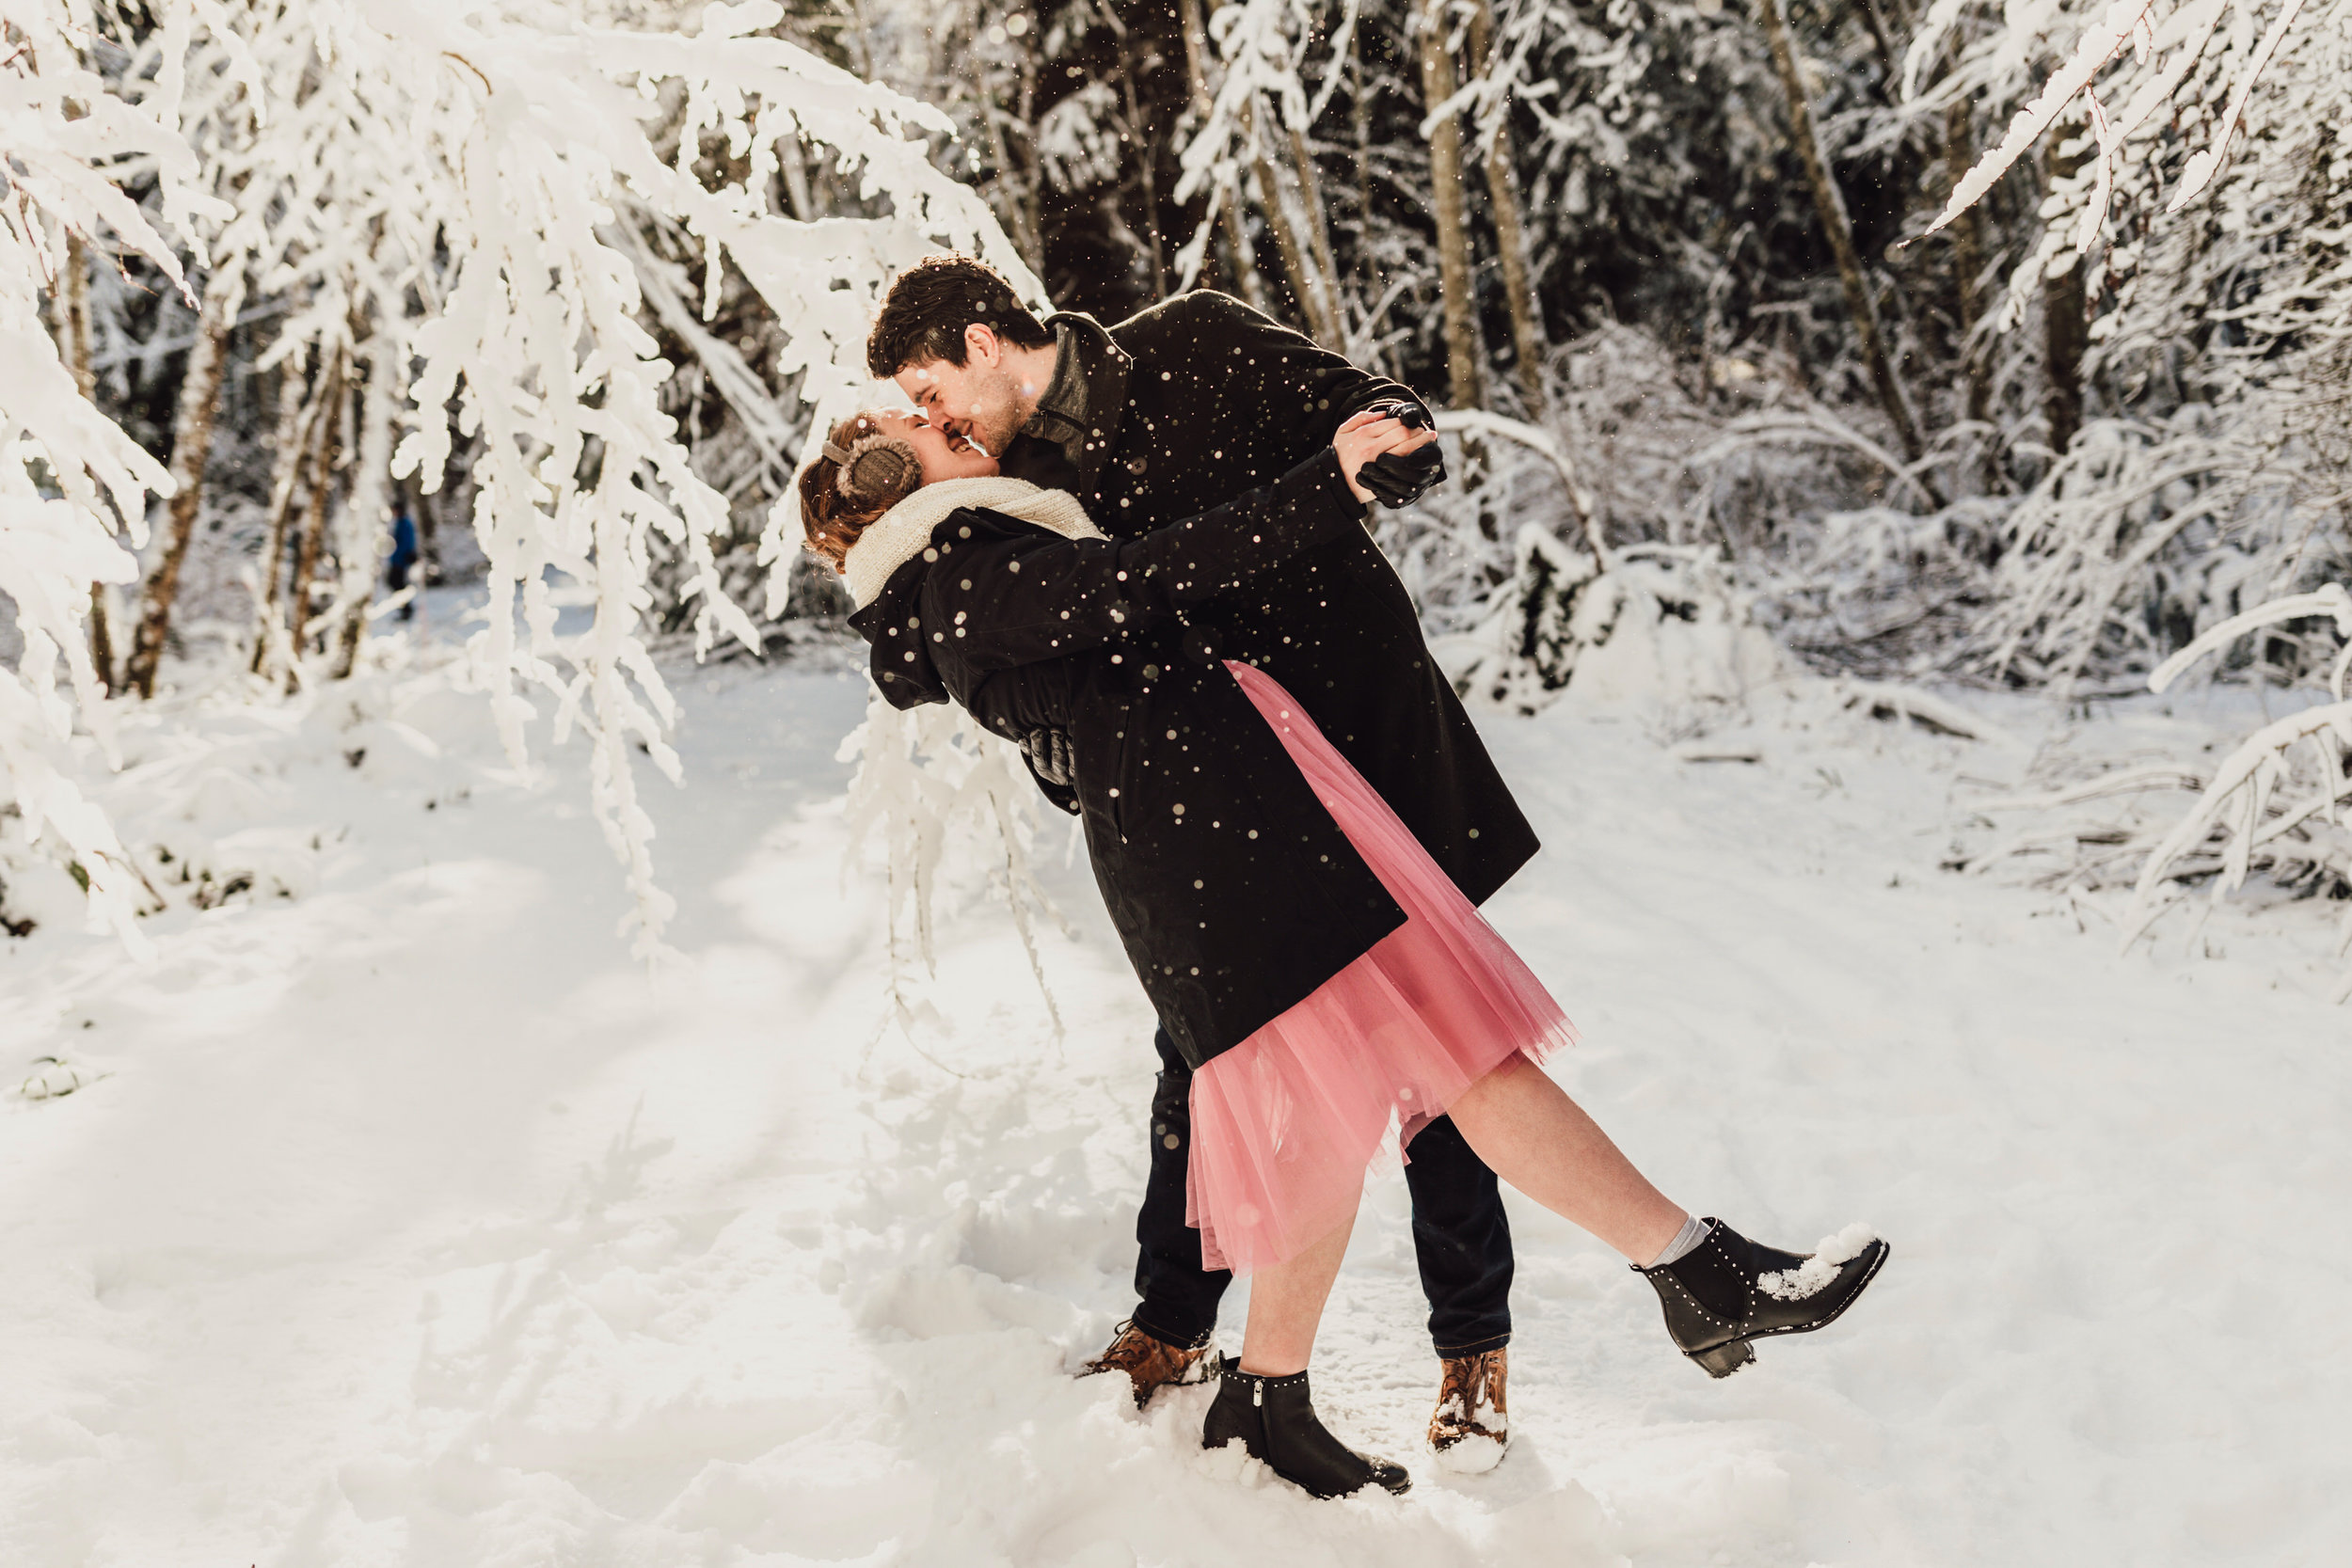 Snowy Engagement Photos - Gibsons Engagement Photos - Sunshine Coast Engagement Photos - Vancouver Wedding Photographer and Videographer - Jennifer Picard Photography106.JPG